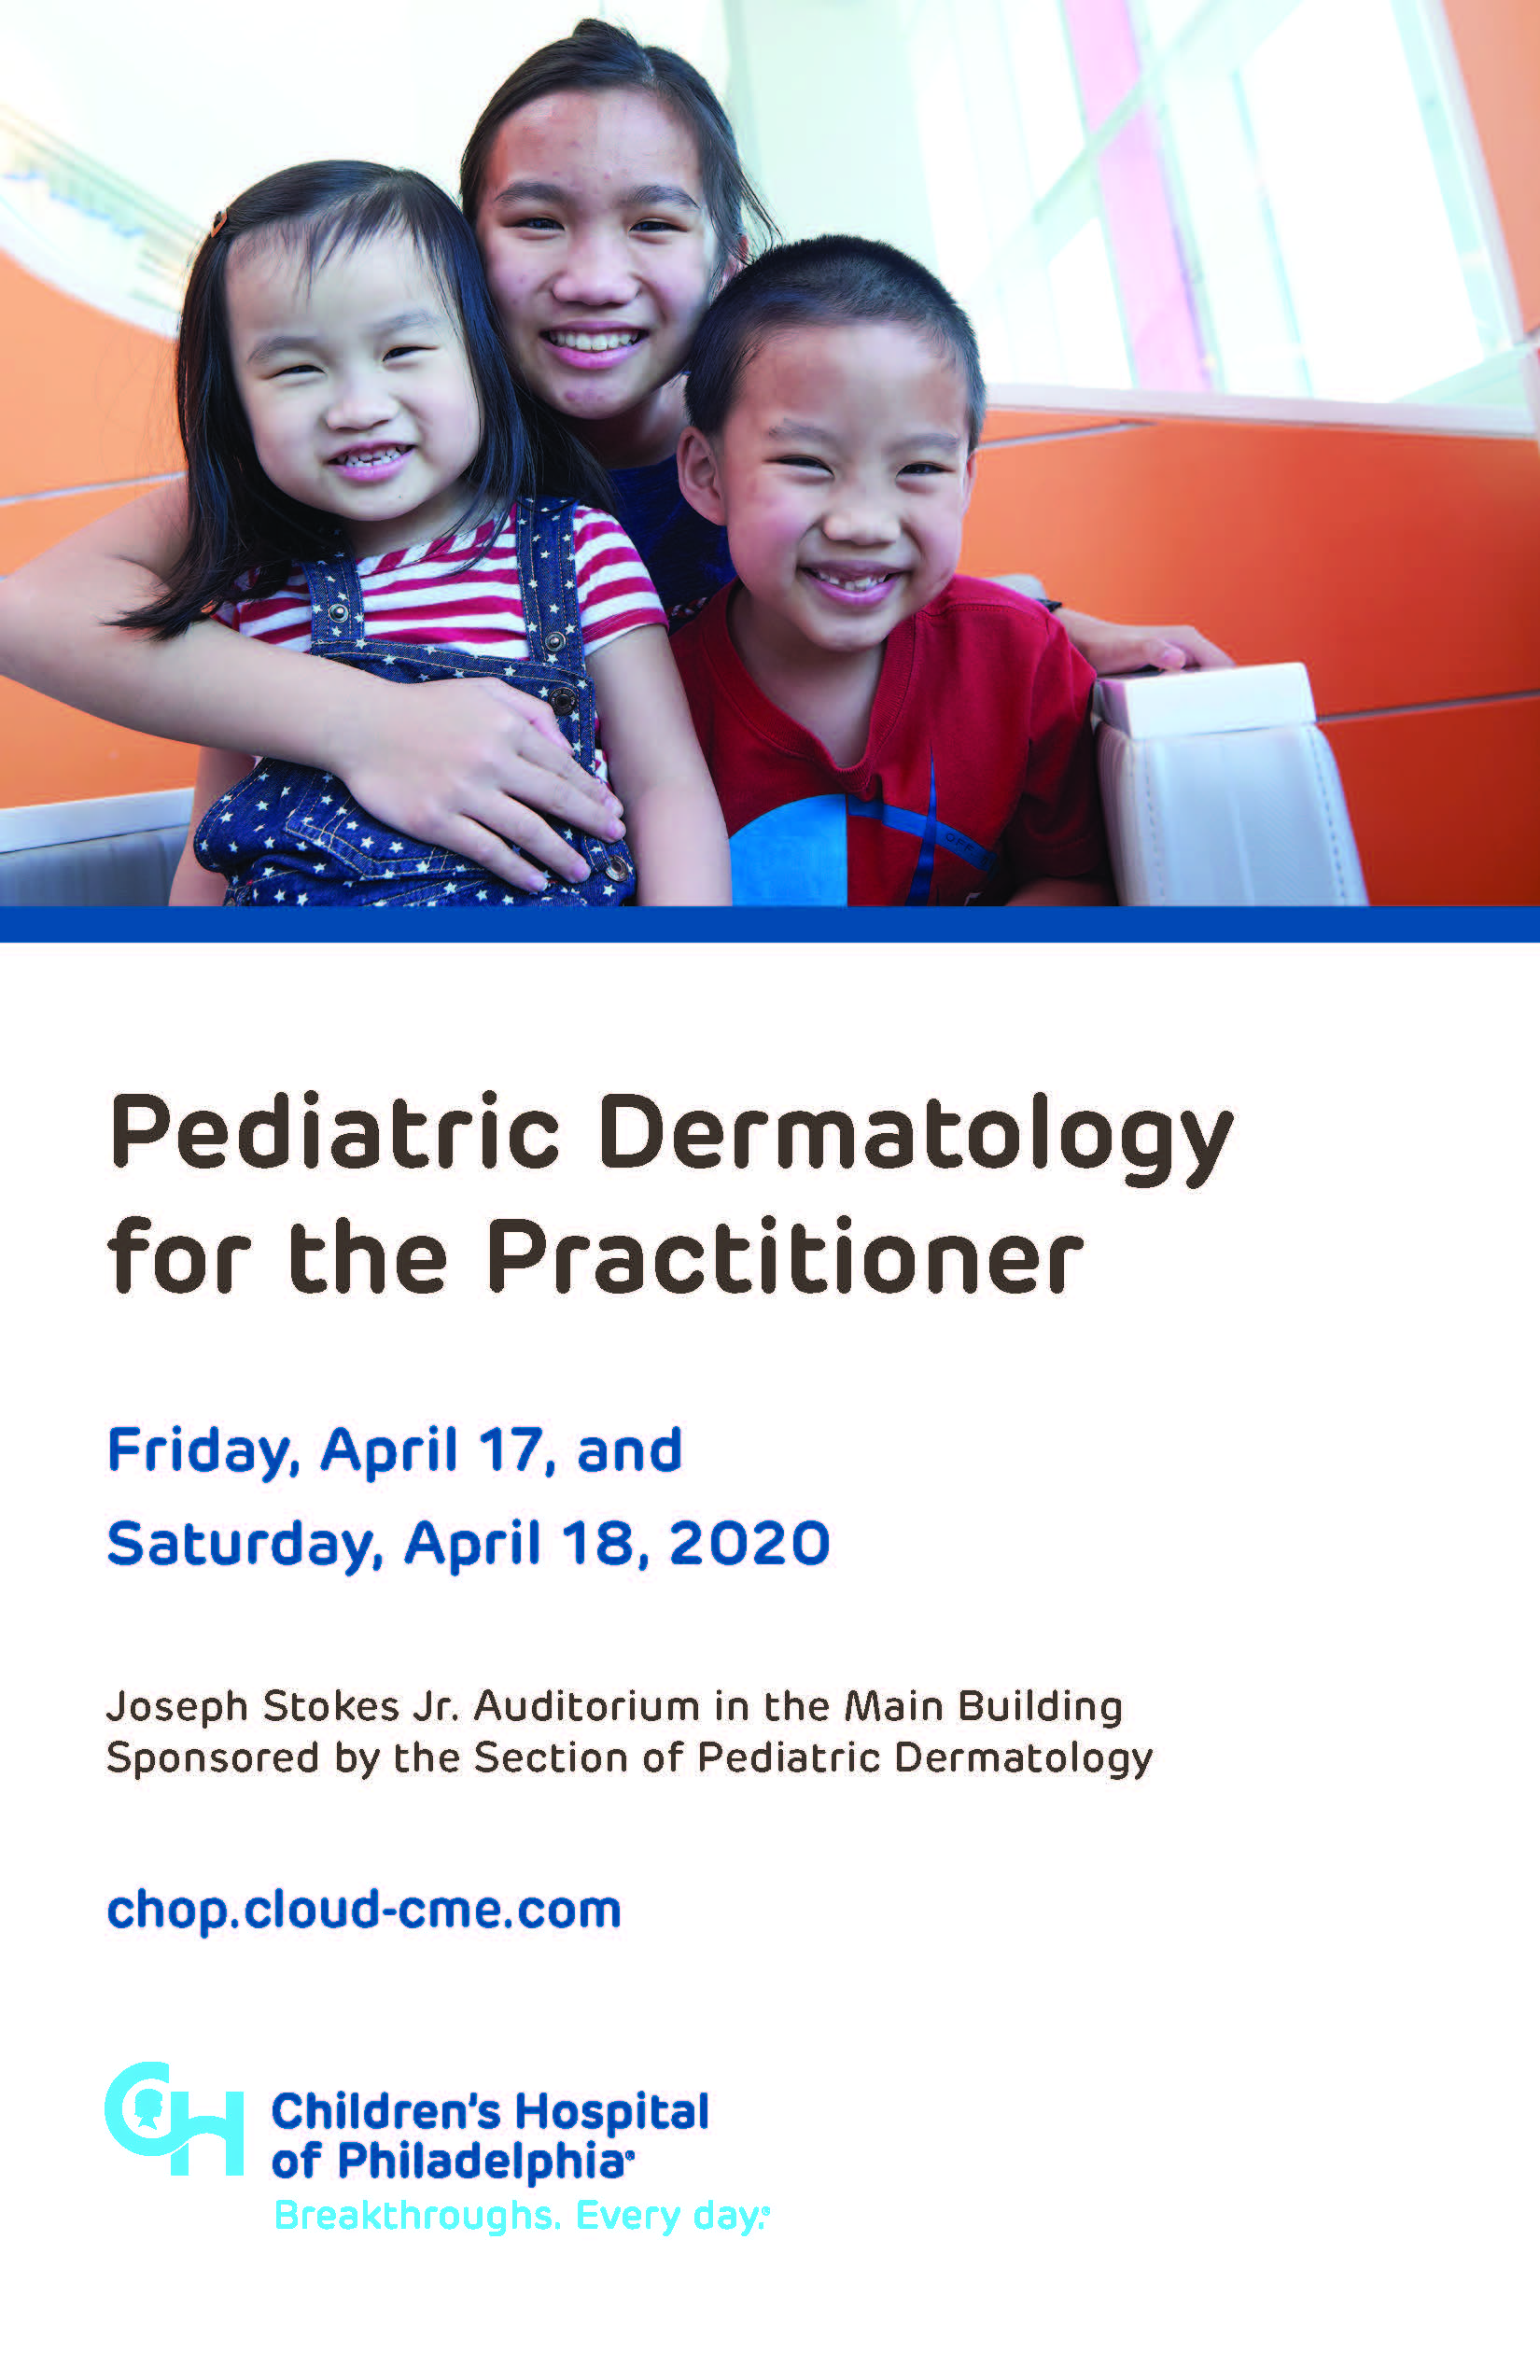 Pediatric Dermatology for the Practitioner Banner